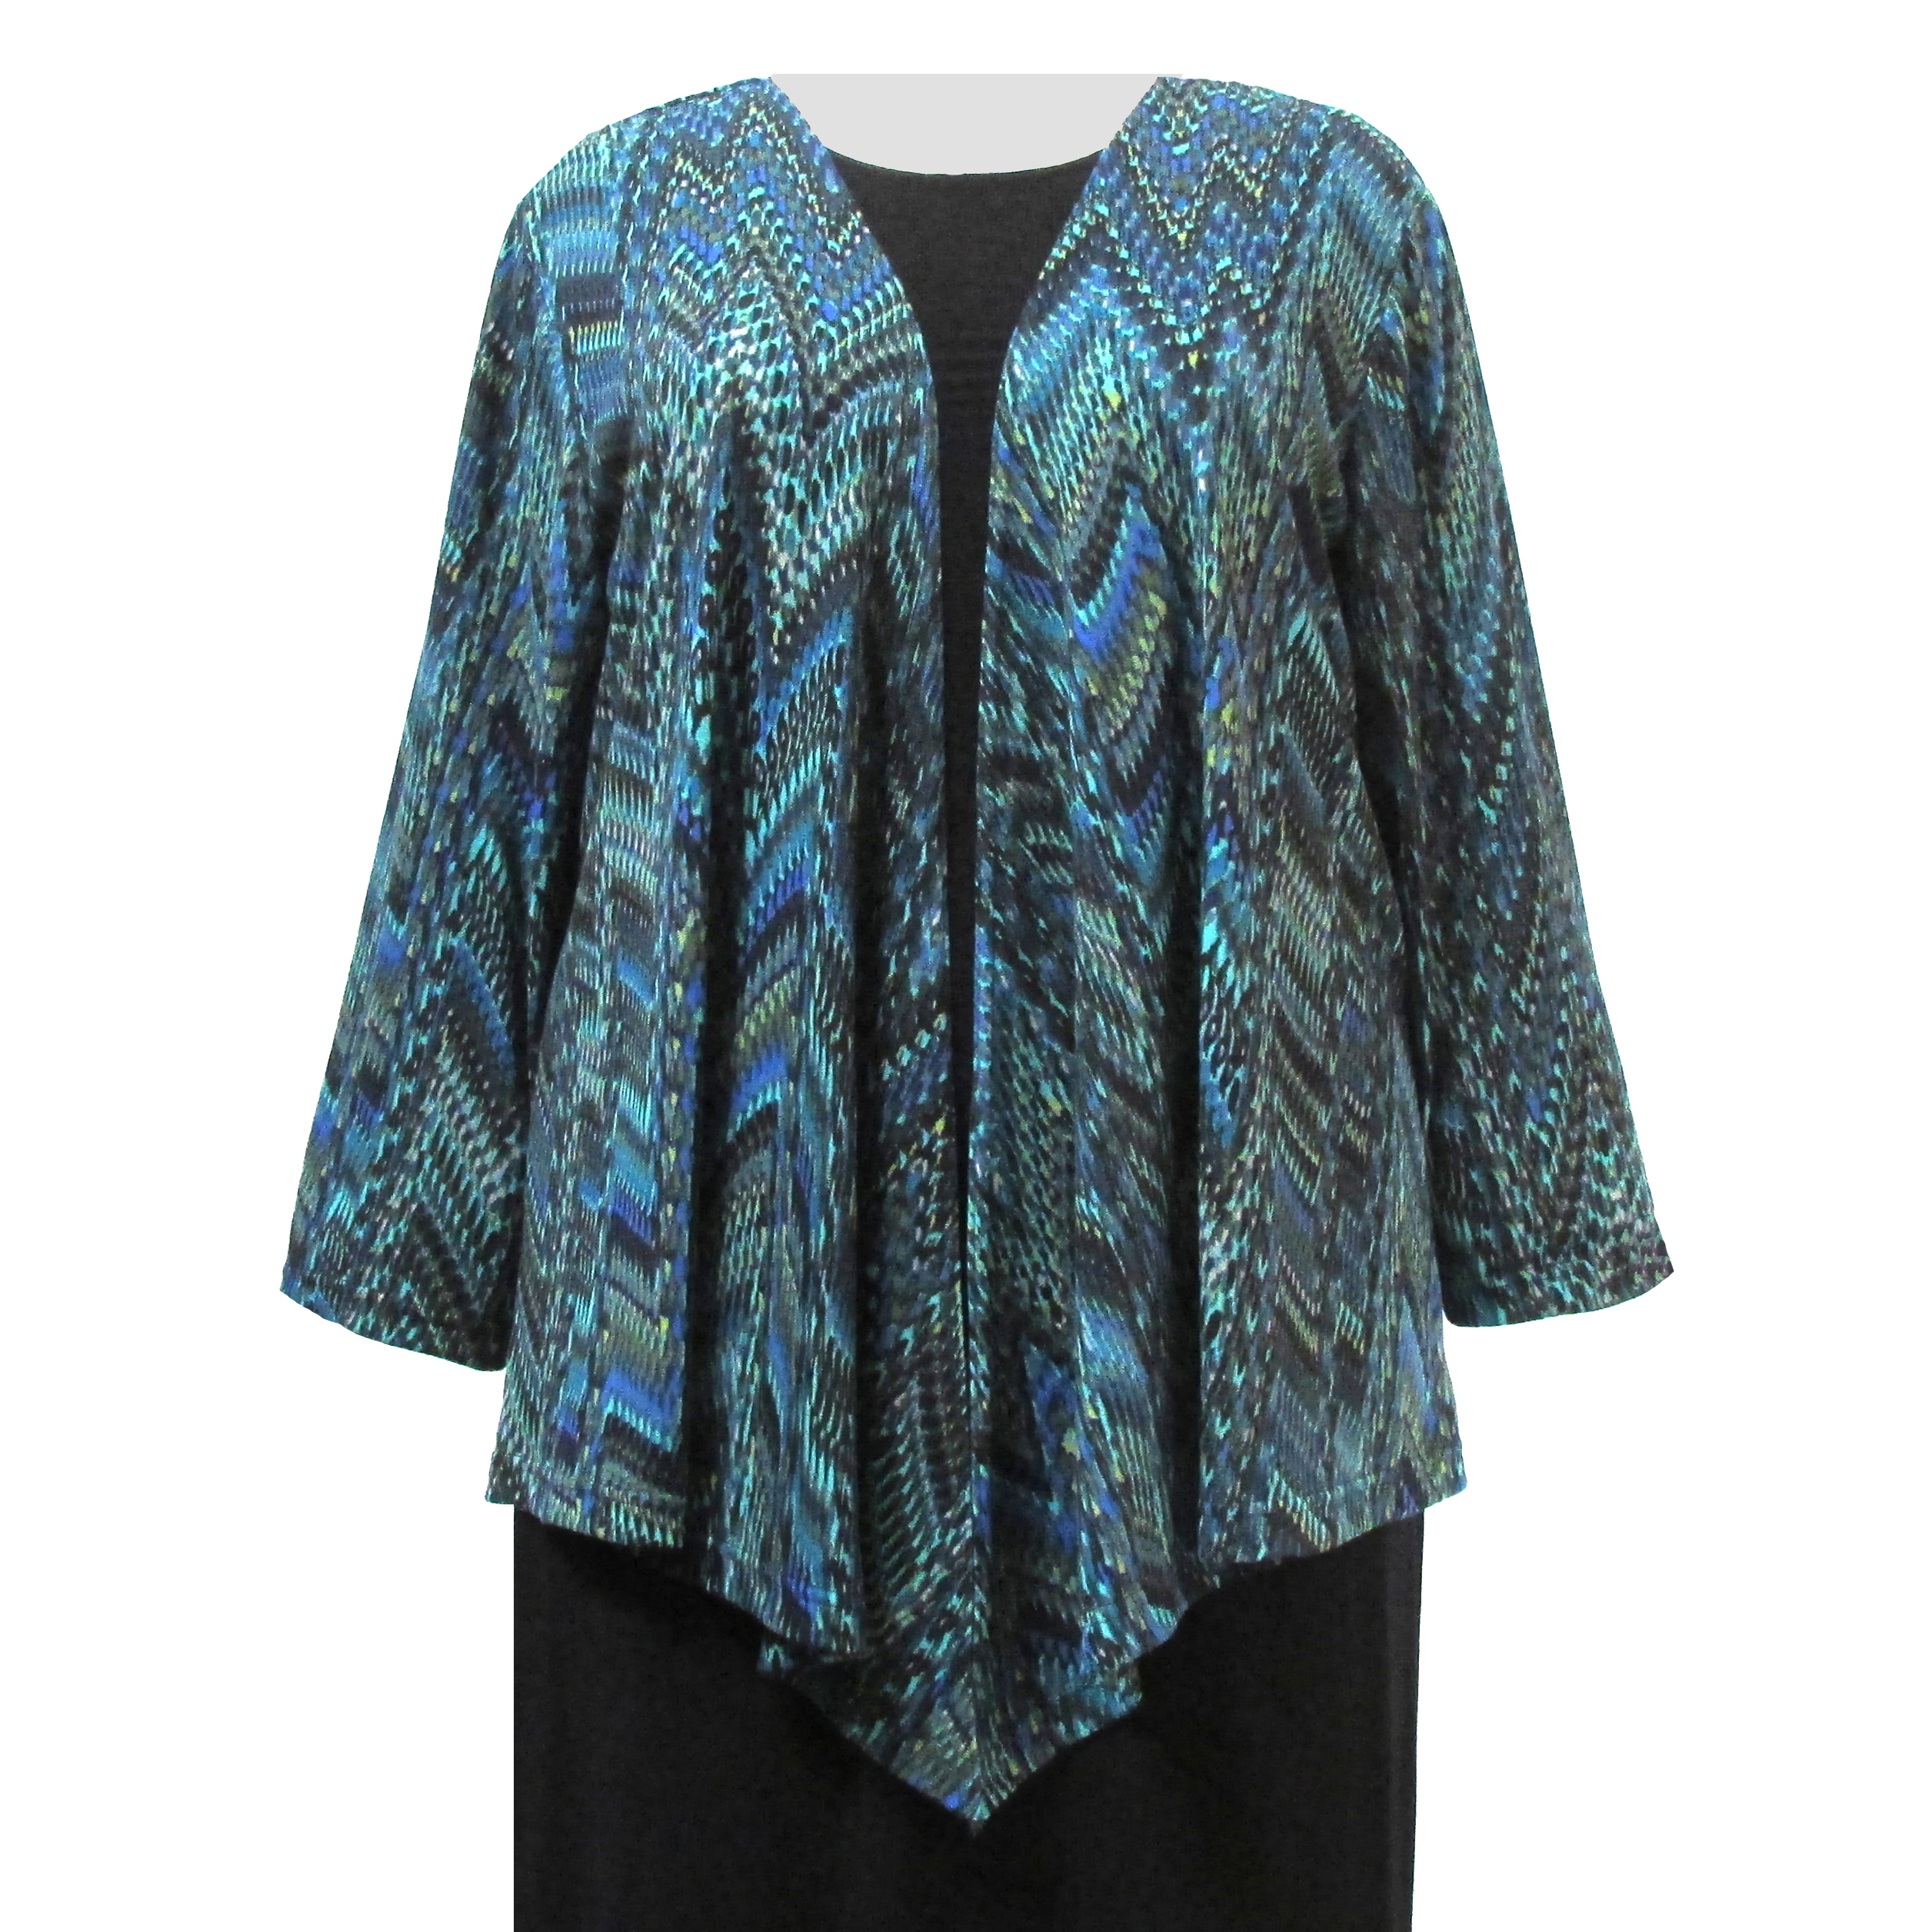 A Personal Touch Green Rain Forest Drape Cardigan Sweater Woman's Plus Size Cardigan